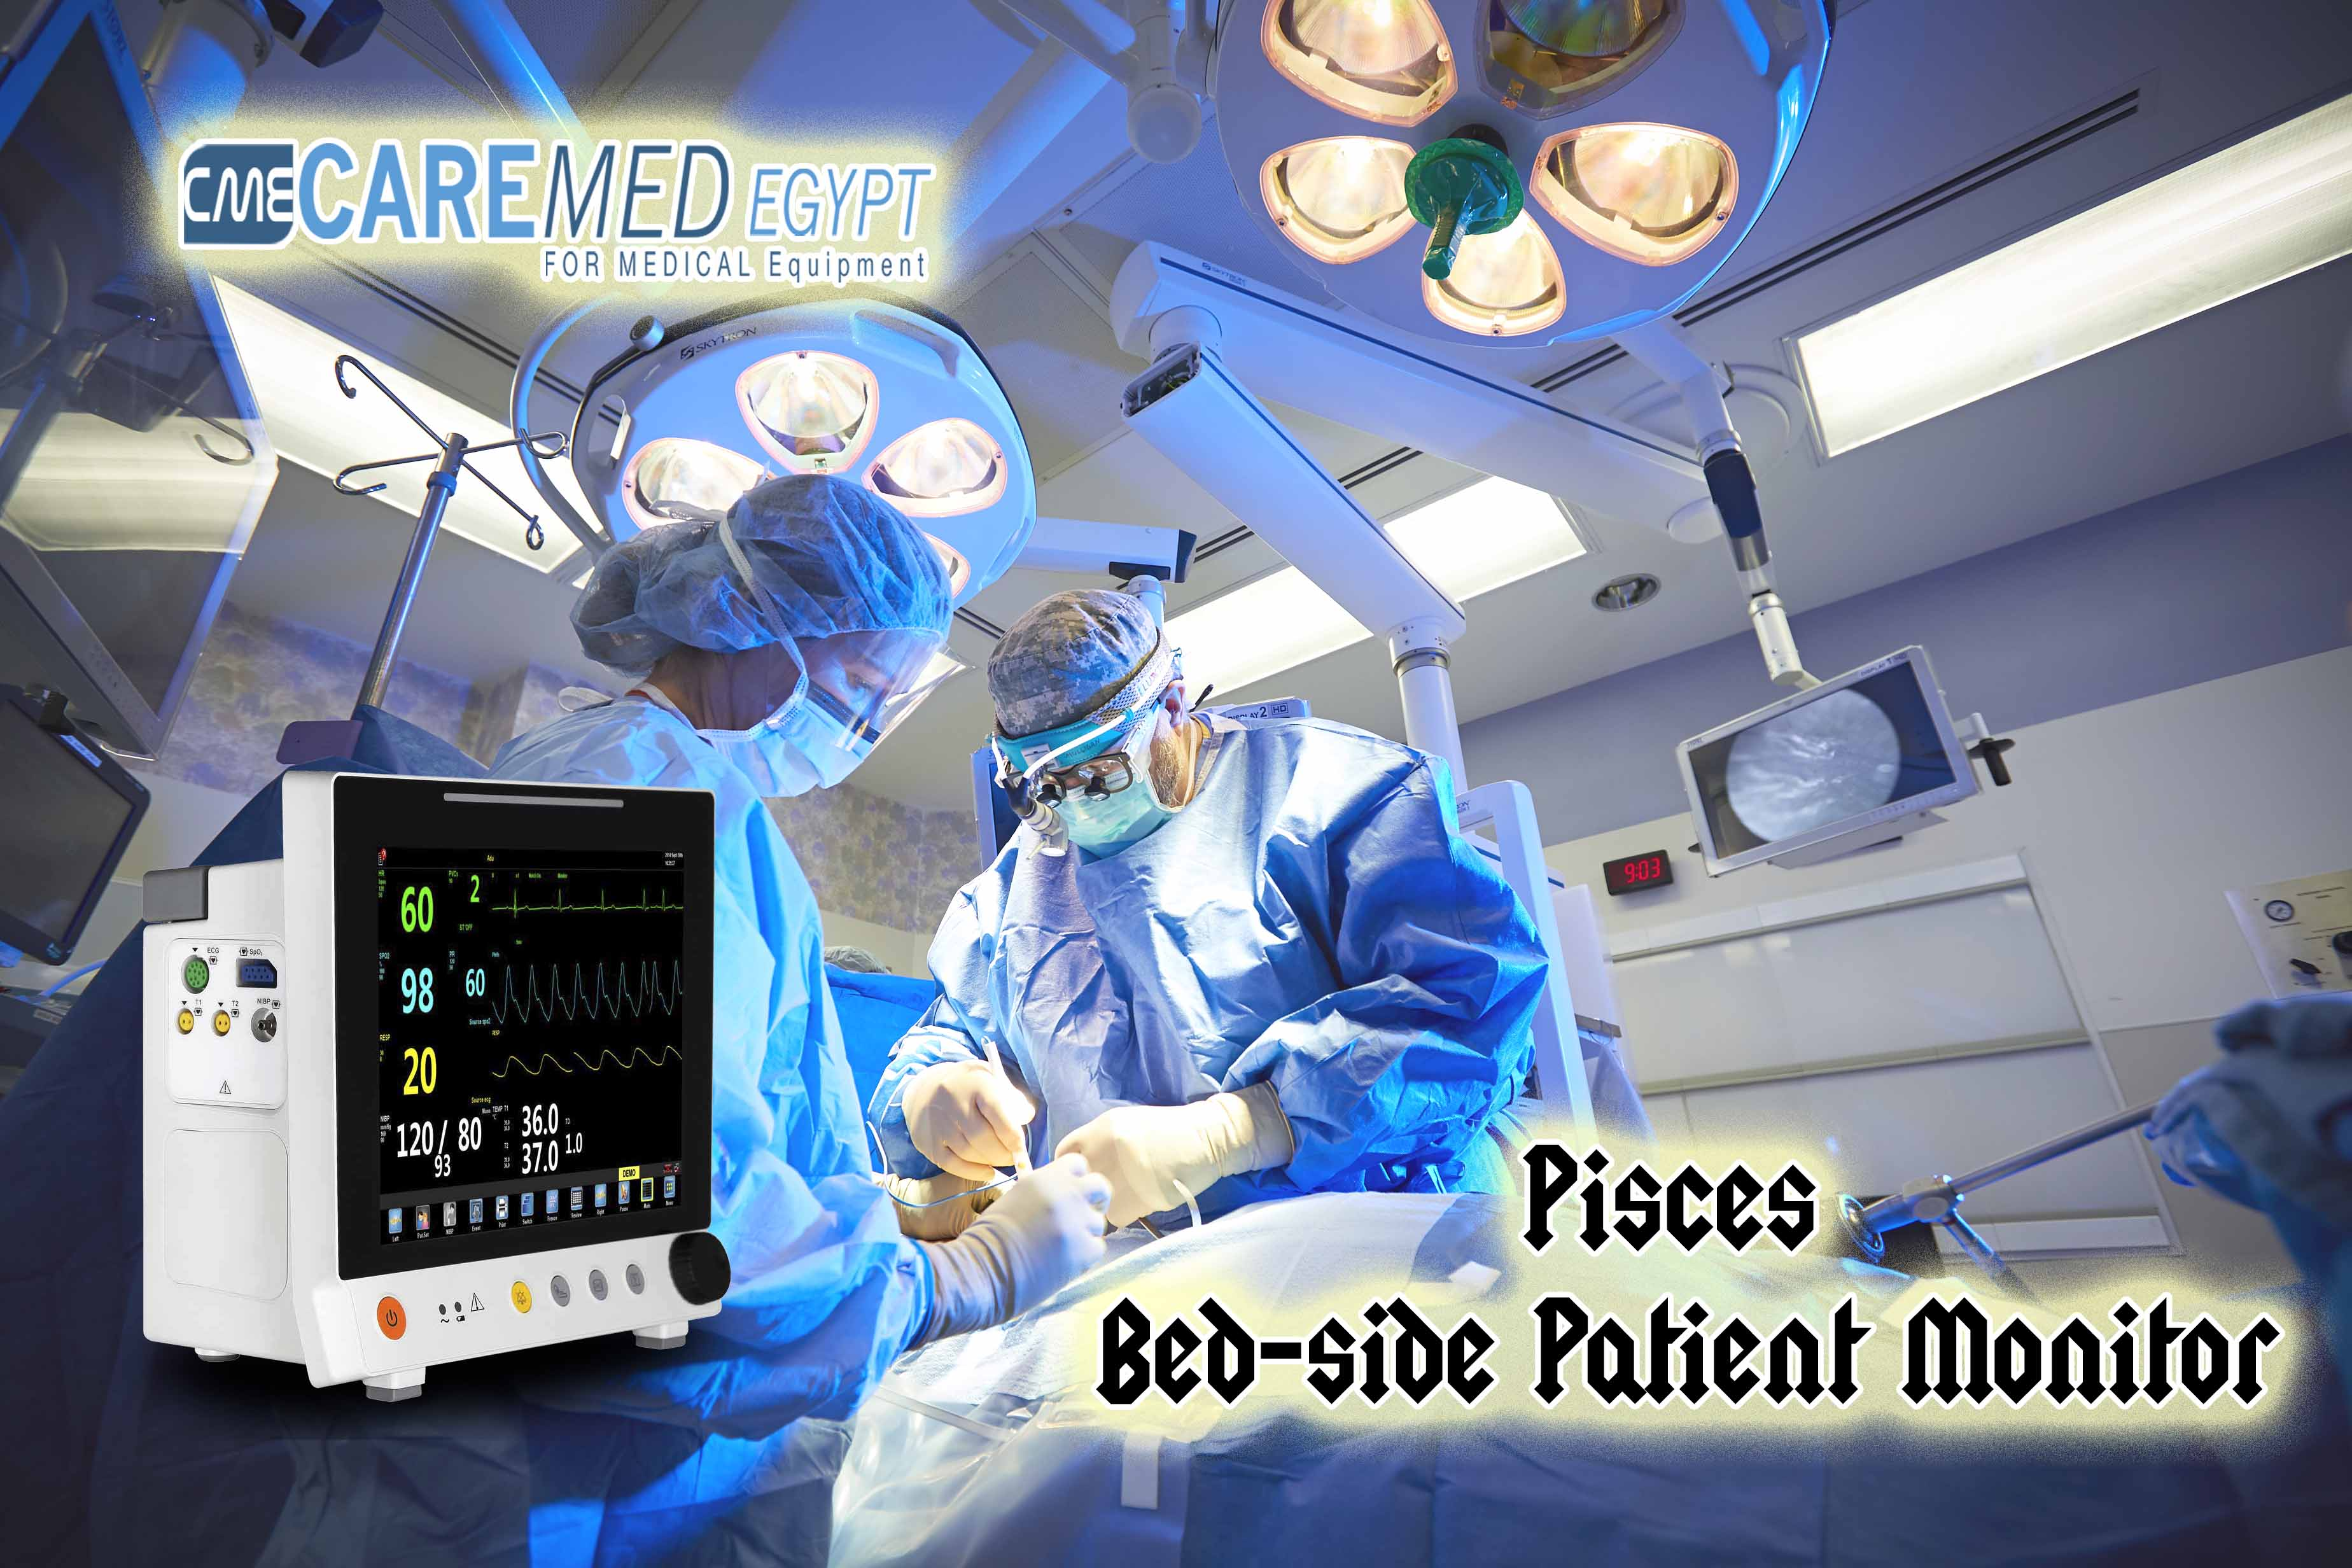 Pisces Bed-side Patient Monitor